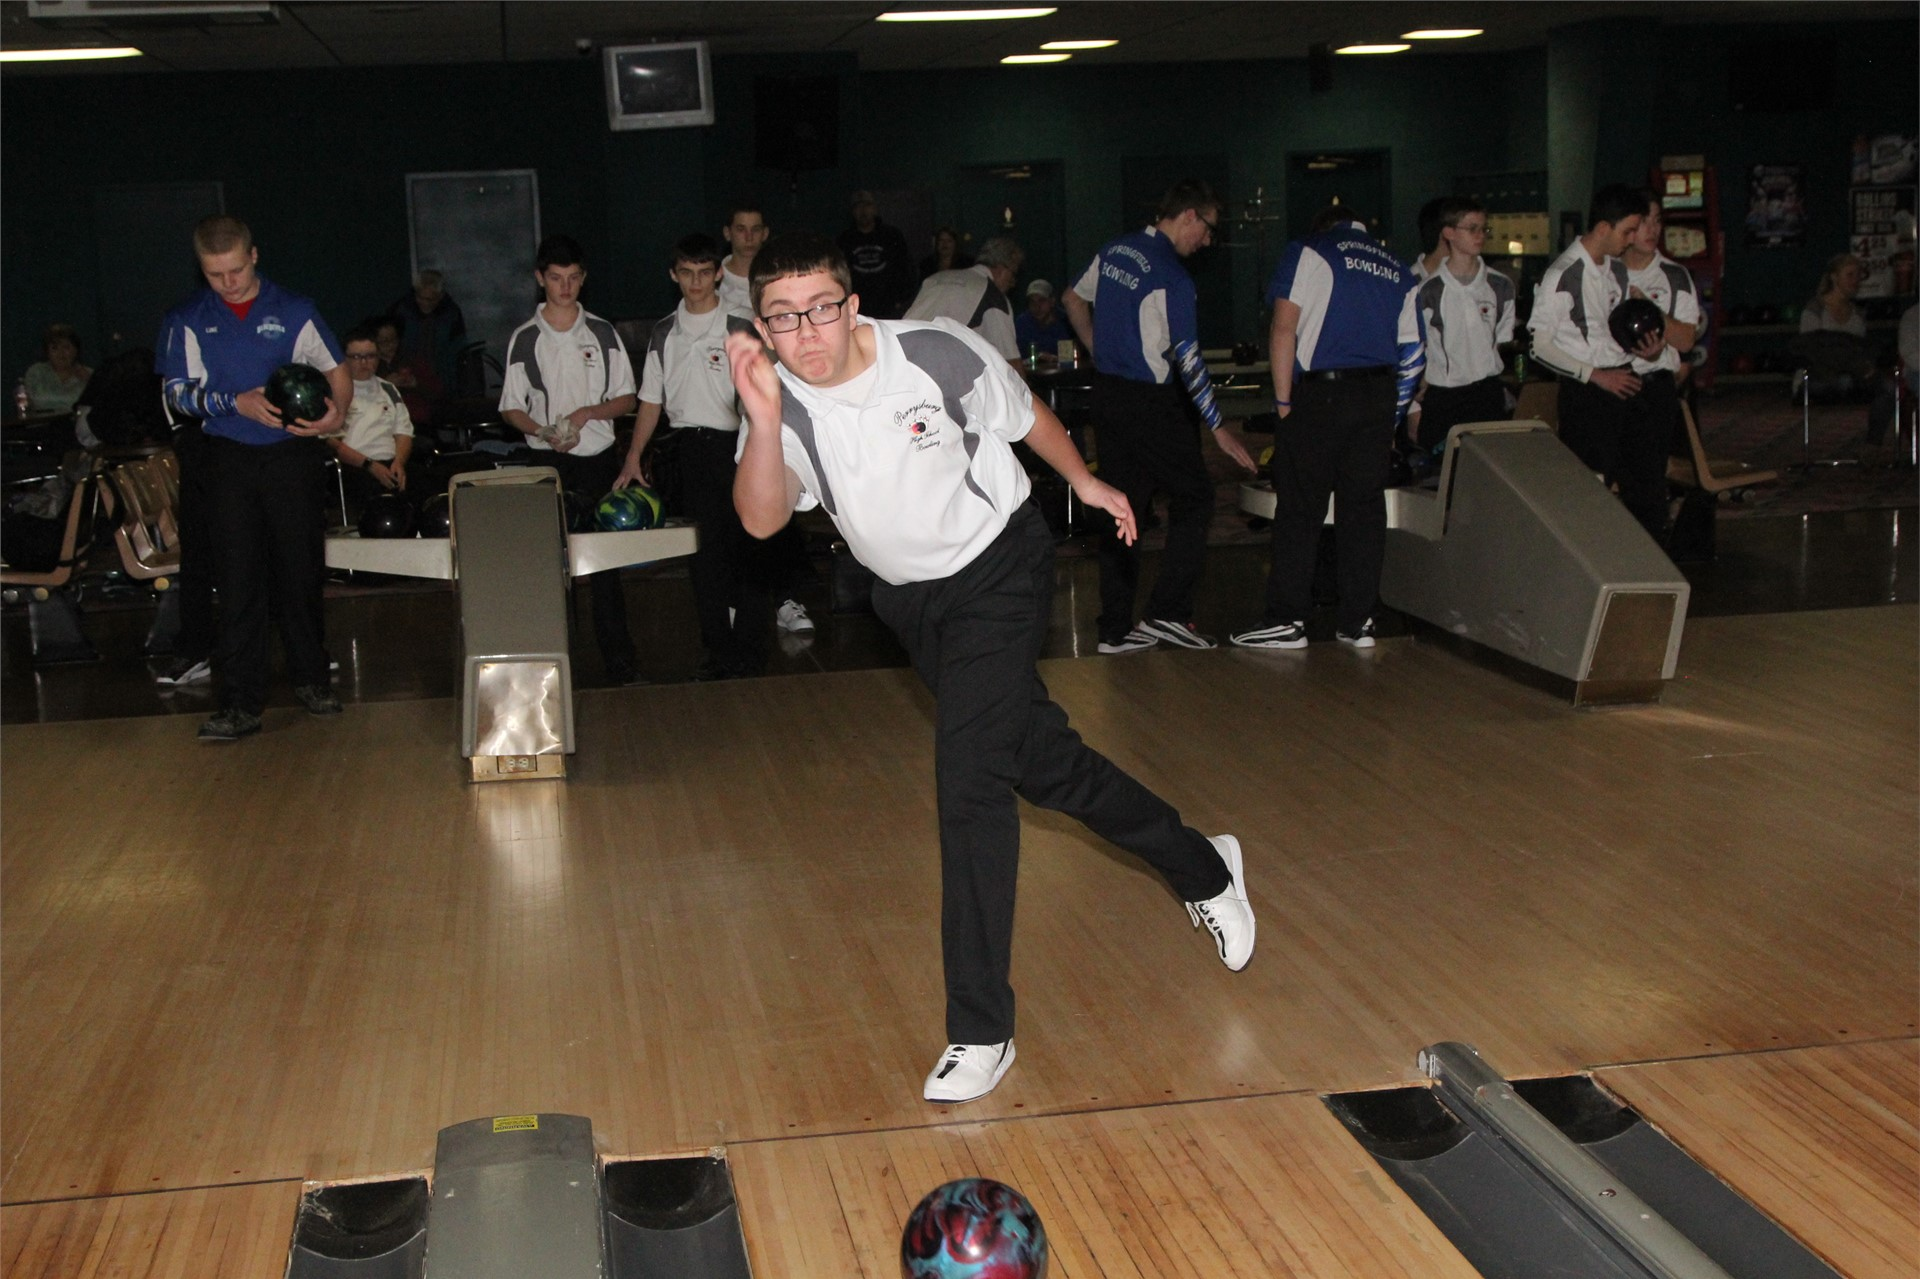 PHS student athlete bowling